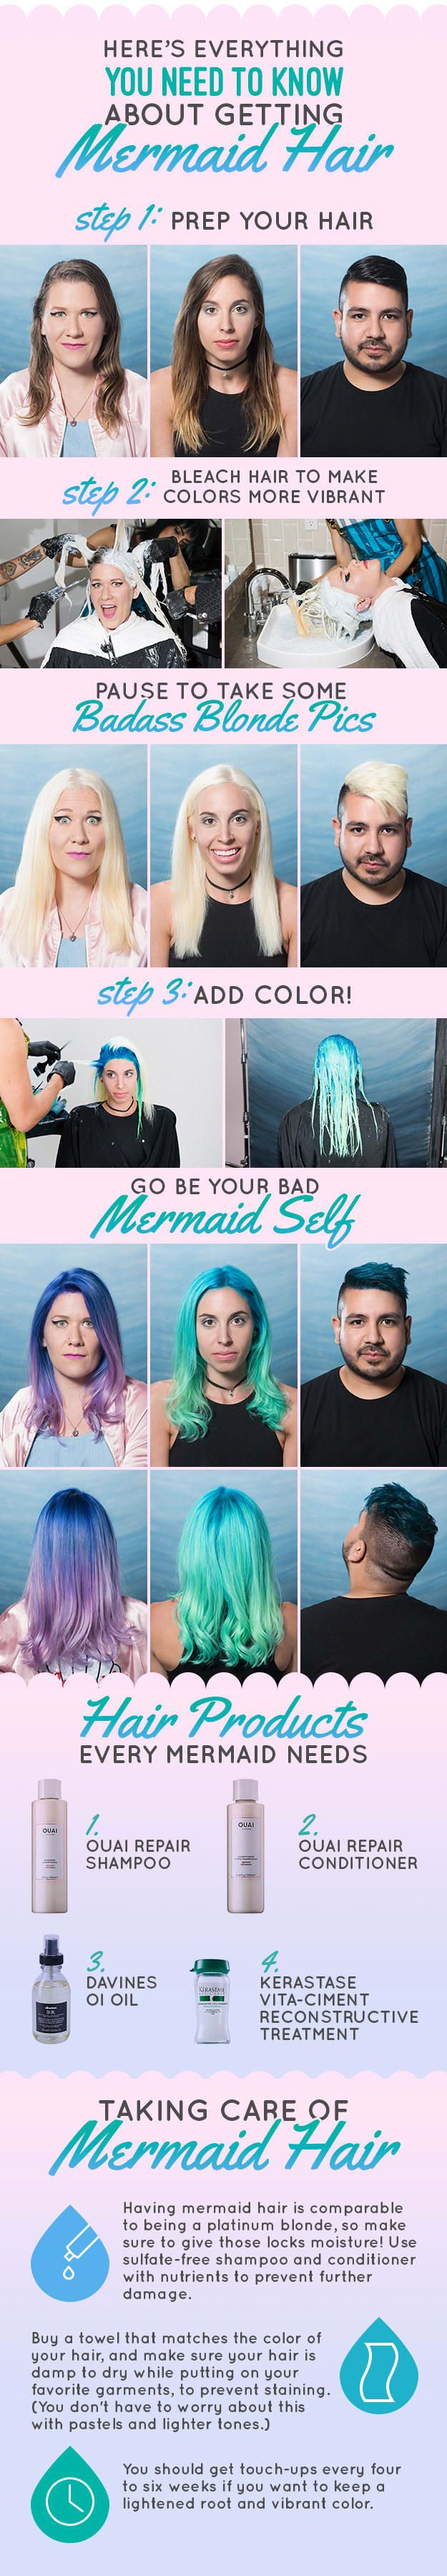 We Got Transformed Into Mermaids, And It Only Took 9